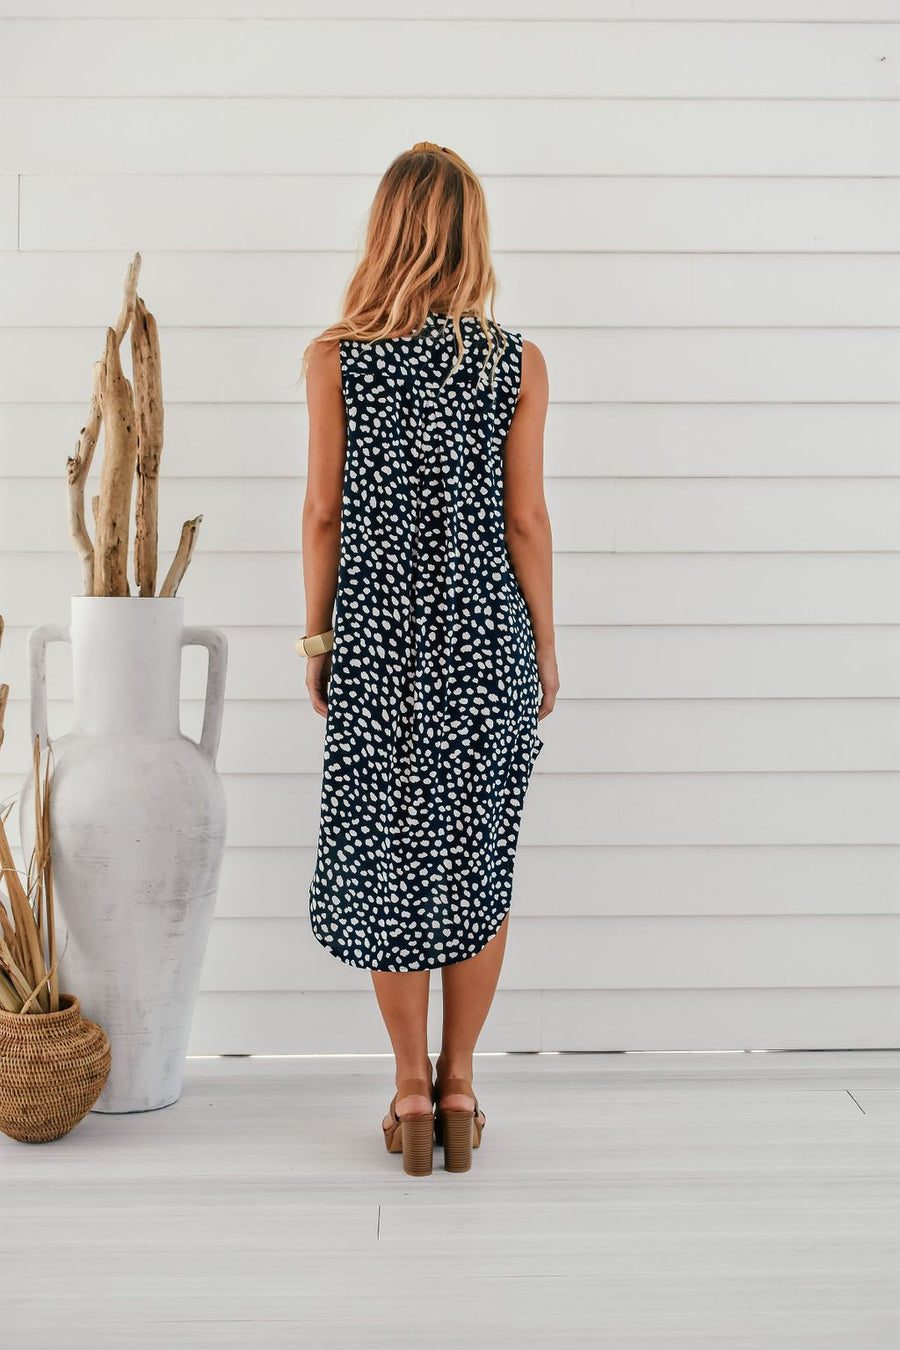 Addi Shirt Dress | Navy Spot DRESS Gray Label